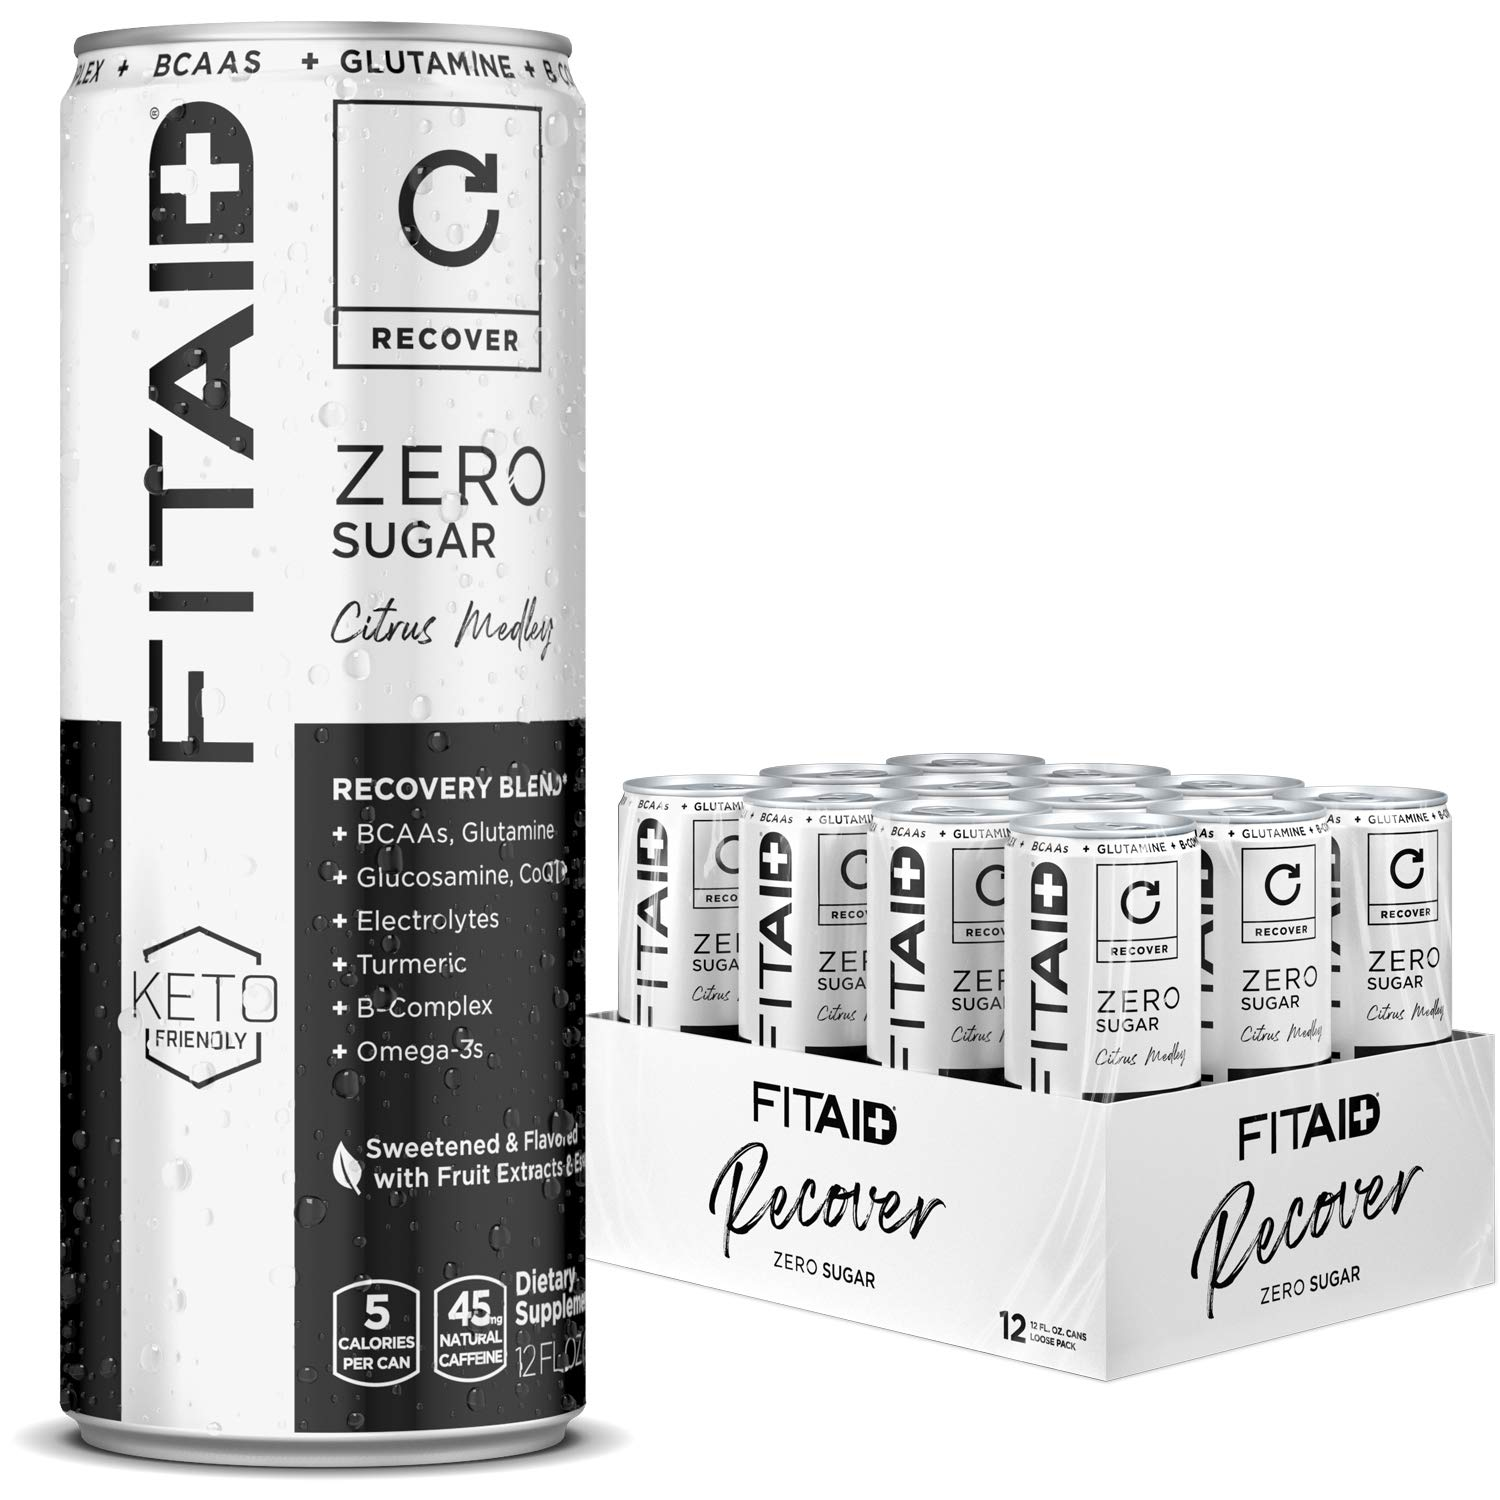 FITAID ZERO Post-Workout Recovery Drink 12 Pack